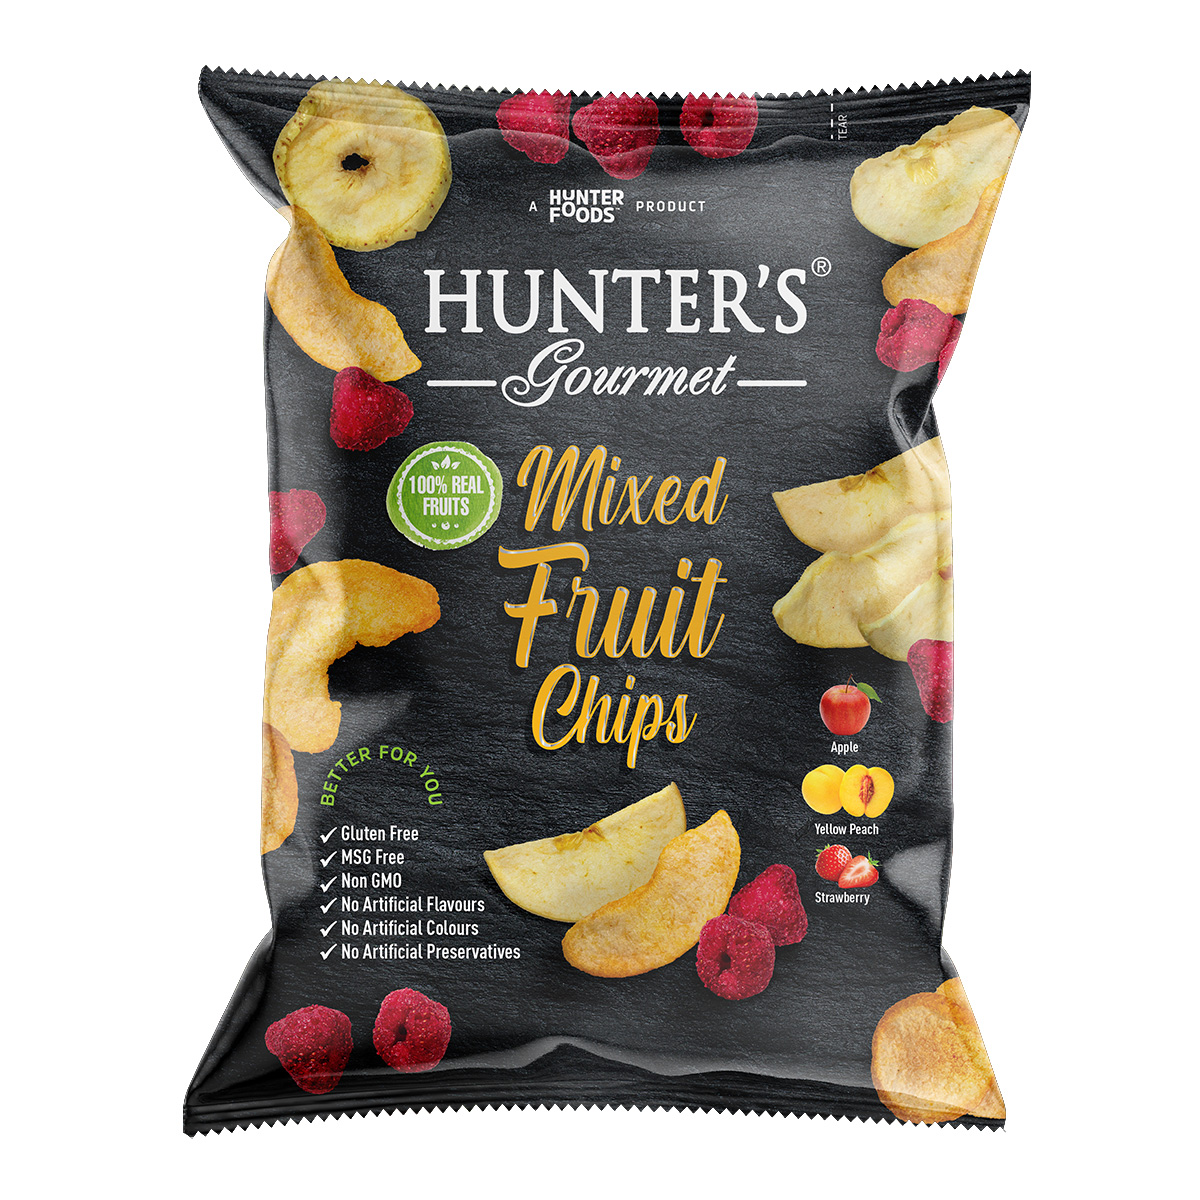 Hunter's Gourmet Mixed Vegetable Chips (75gm)